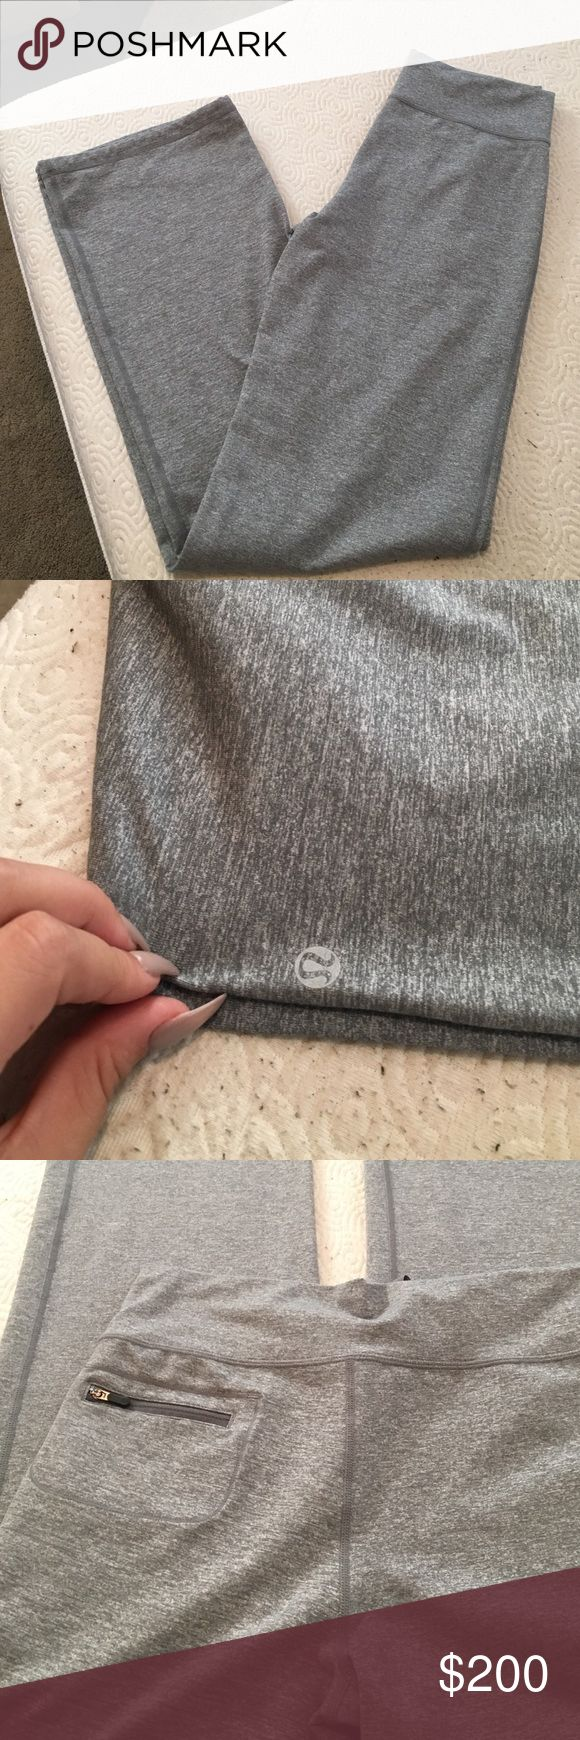 Gray LuluLemon Long Bootcut Leggings ✨ They are long enough for me and I'm 5'11 😊 super comfy and stretchy, worn once.. Once again I am only putting the price is really high to see what reasonable offers I would get💕 lululemon athletica Pants Leggings